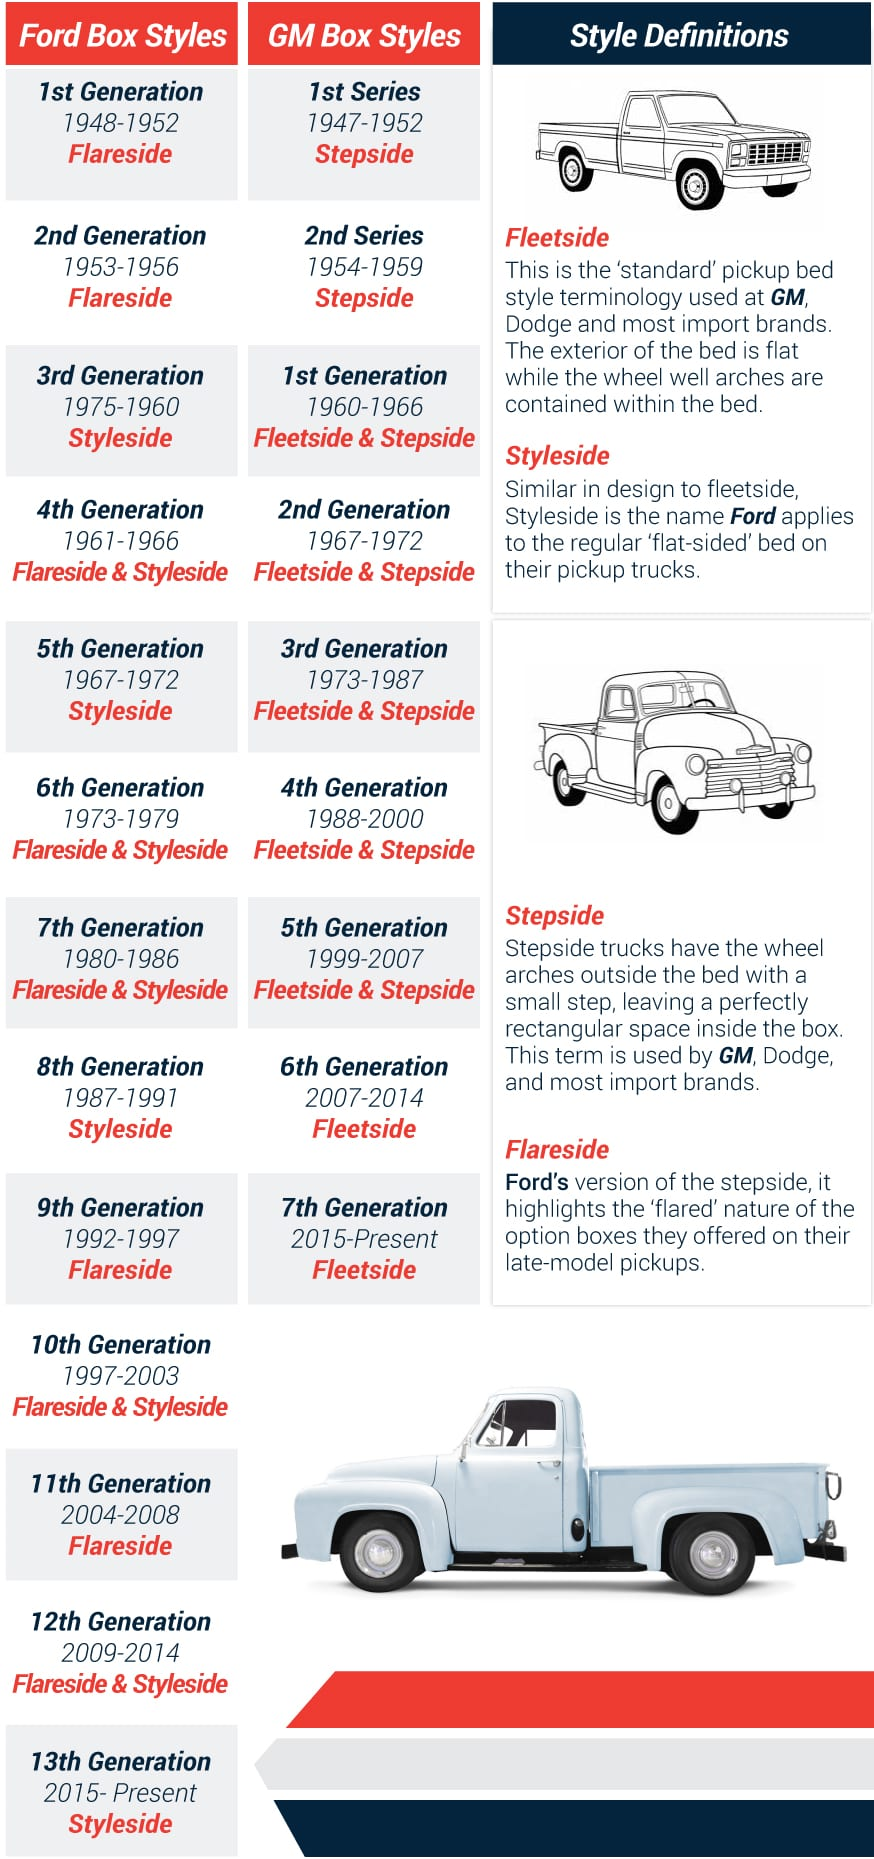 Ford and GM truck box style history chart